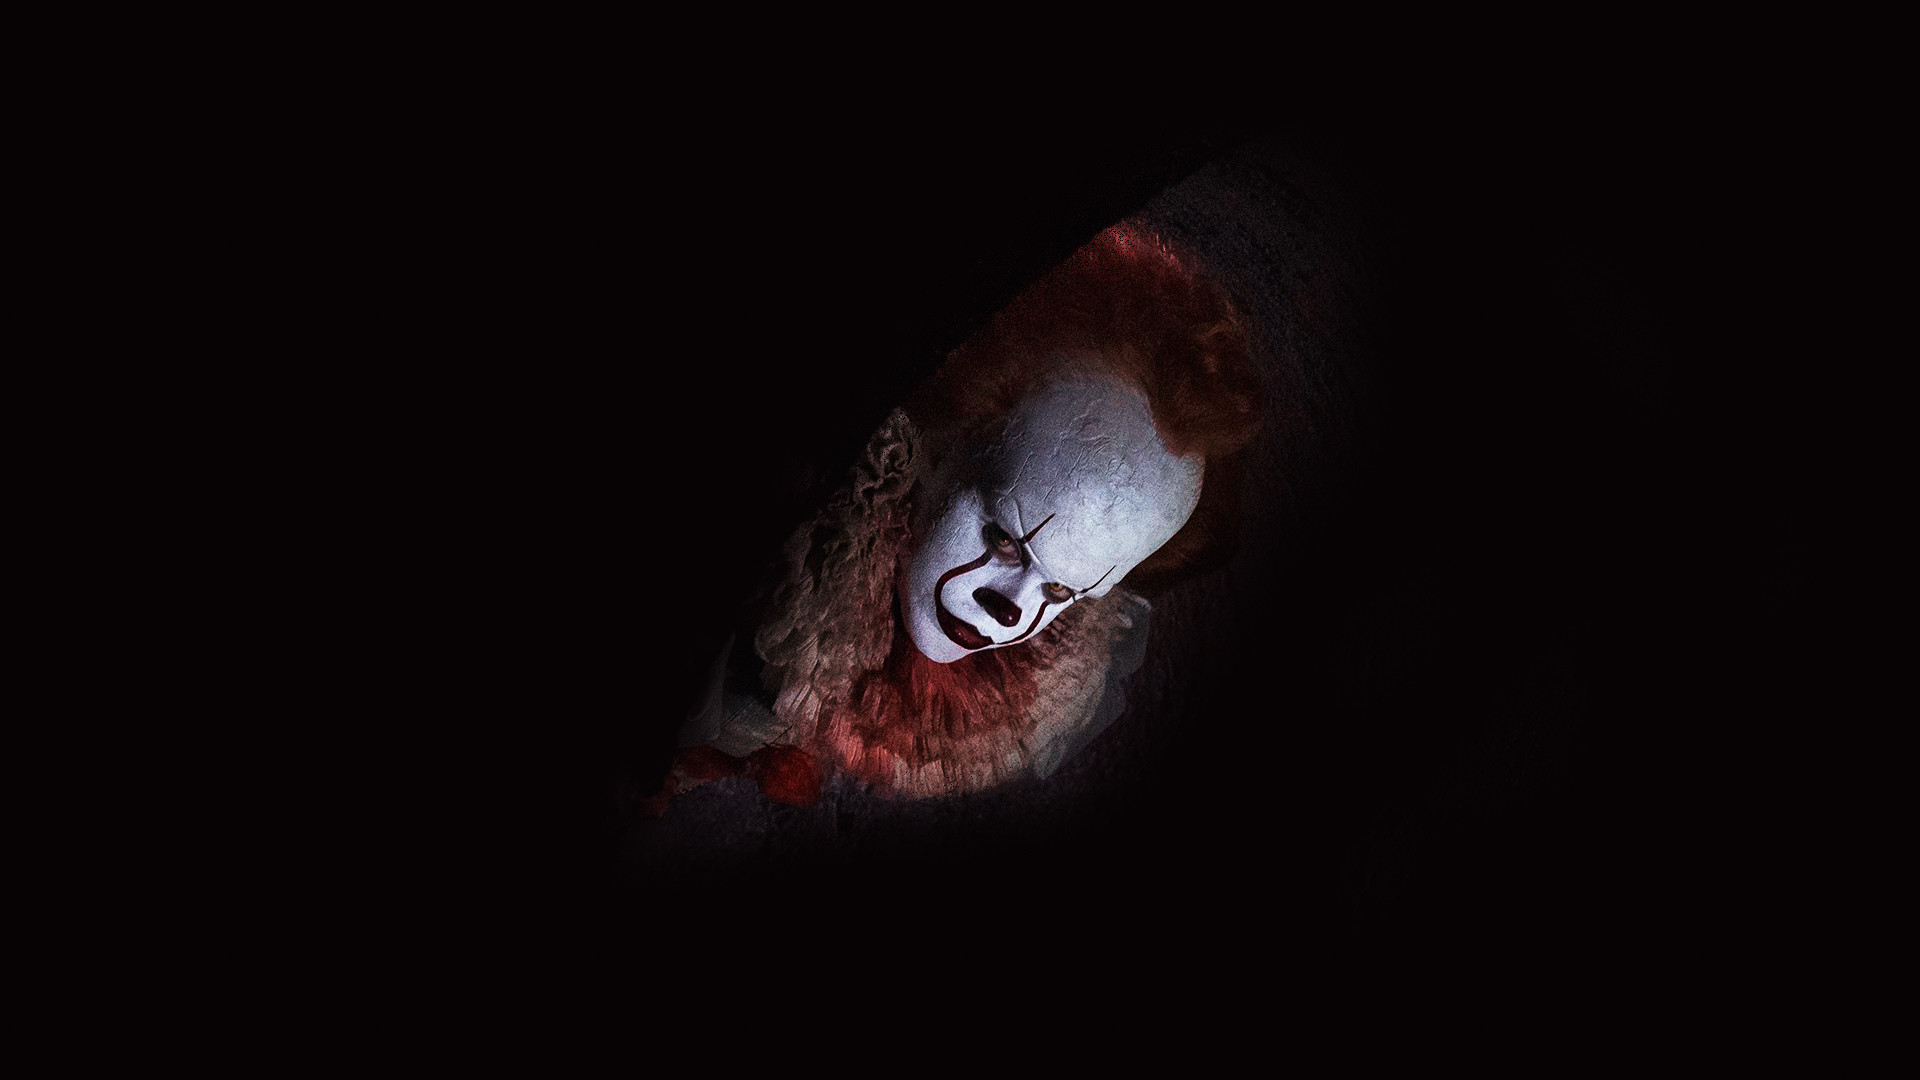 10 New Horror Movie Wallpaper Hd Full Hd 1920 1080 For Pc: Scary Clown HD Wallpaper (73+ Images